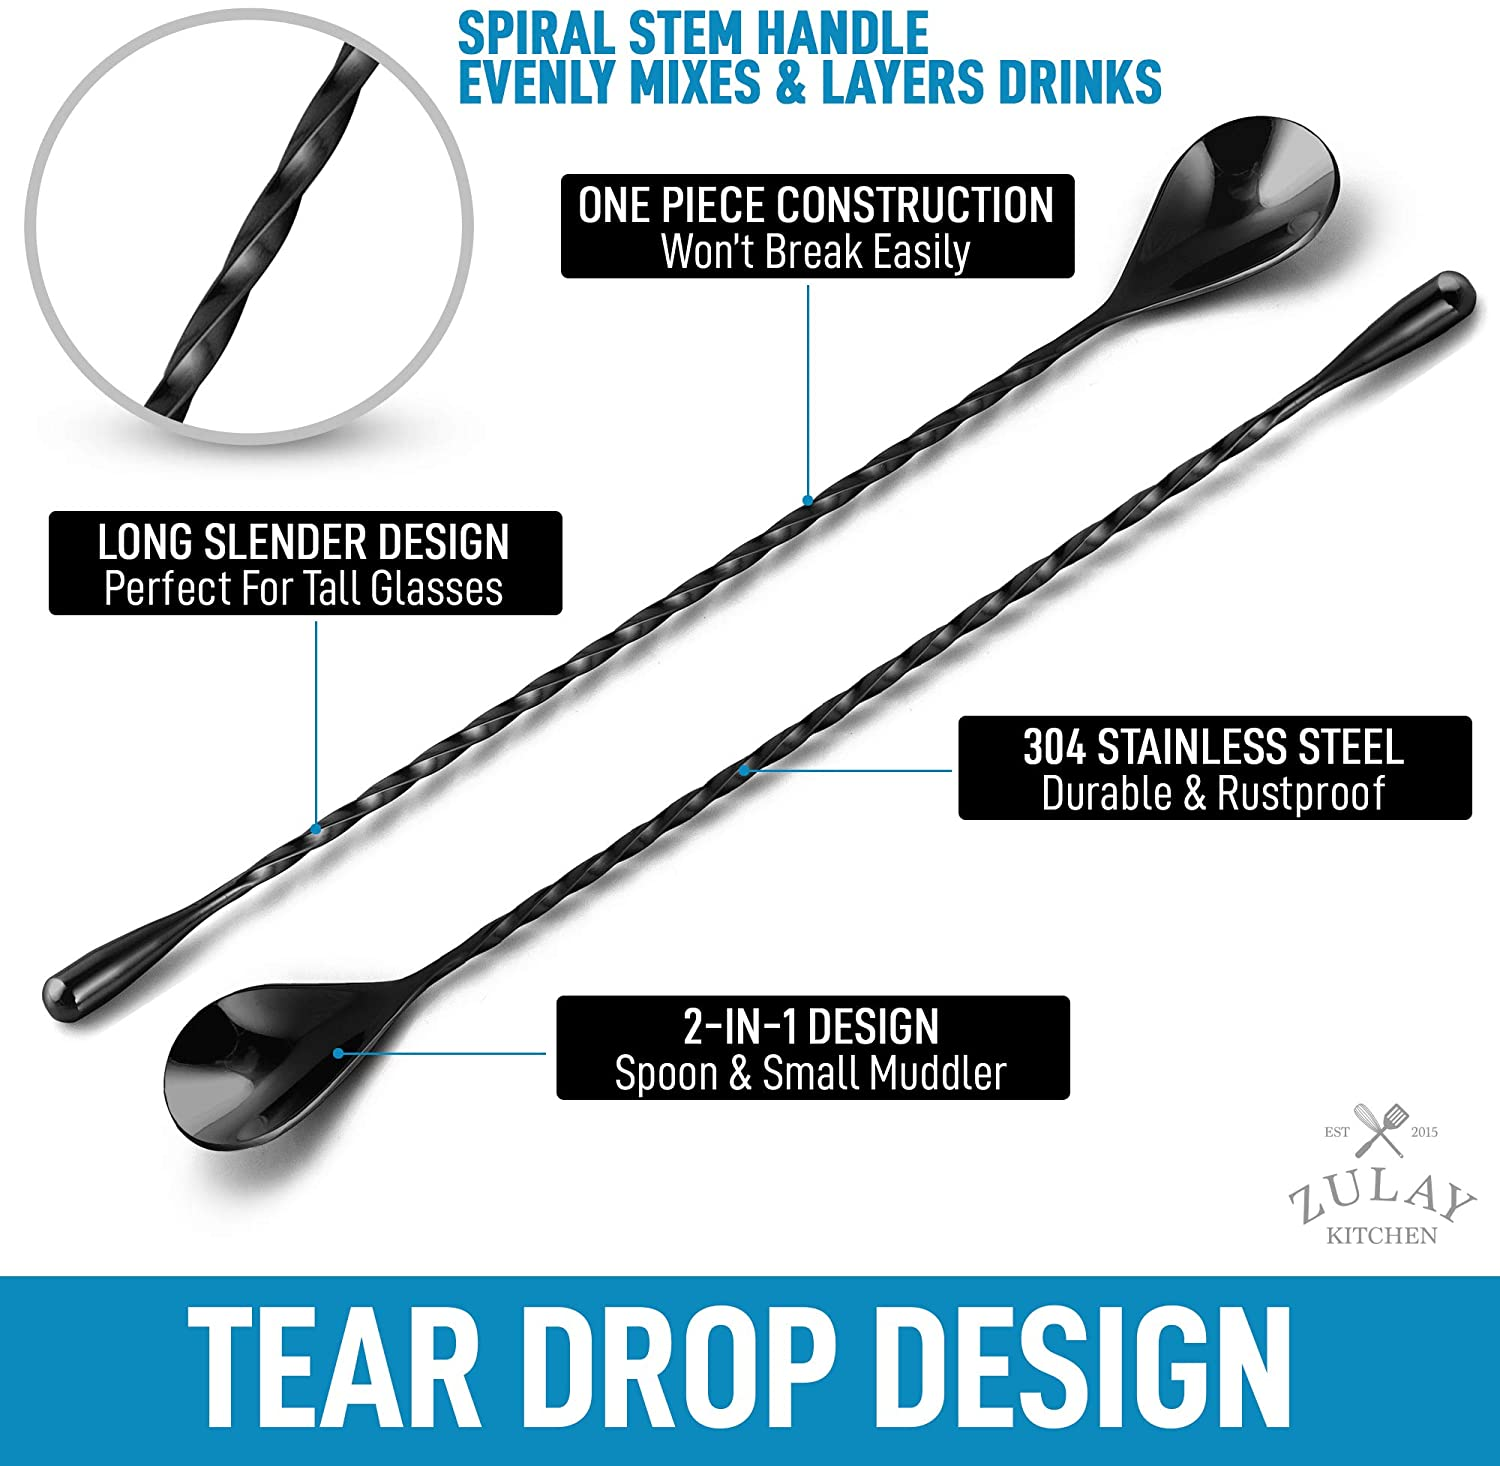 Stainless Steel Spiral Handle for Easier Mixing Cocktail Mixing Spoon Ideal Tool for Bartenders